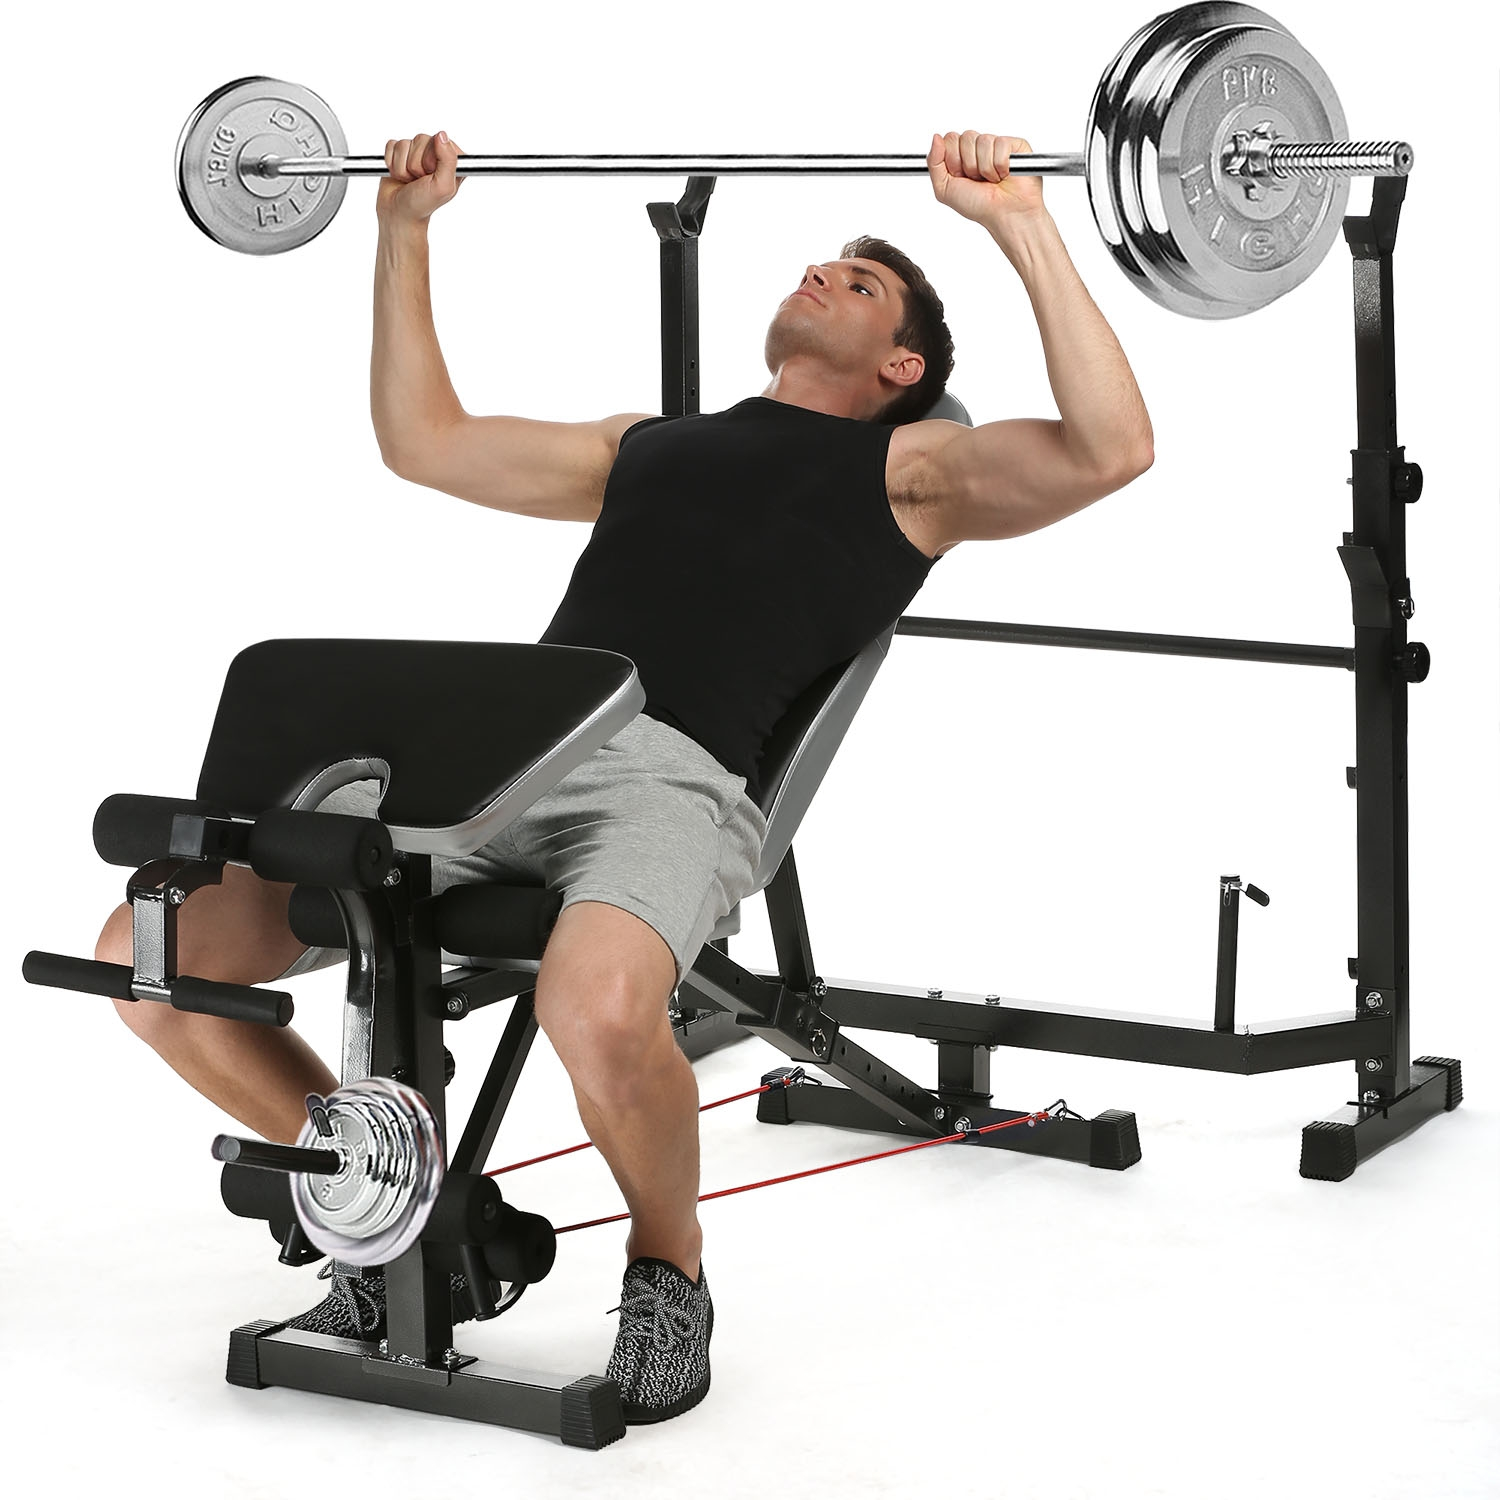 Olympic Weight Bench Multi-Function Workout Bench Set with Adjustable Uprights  Rack